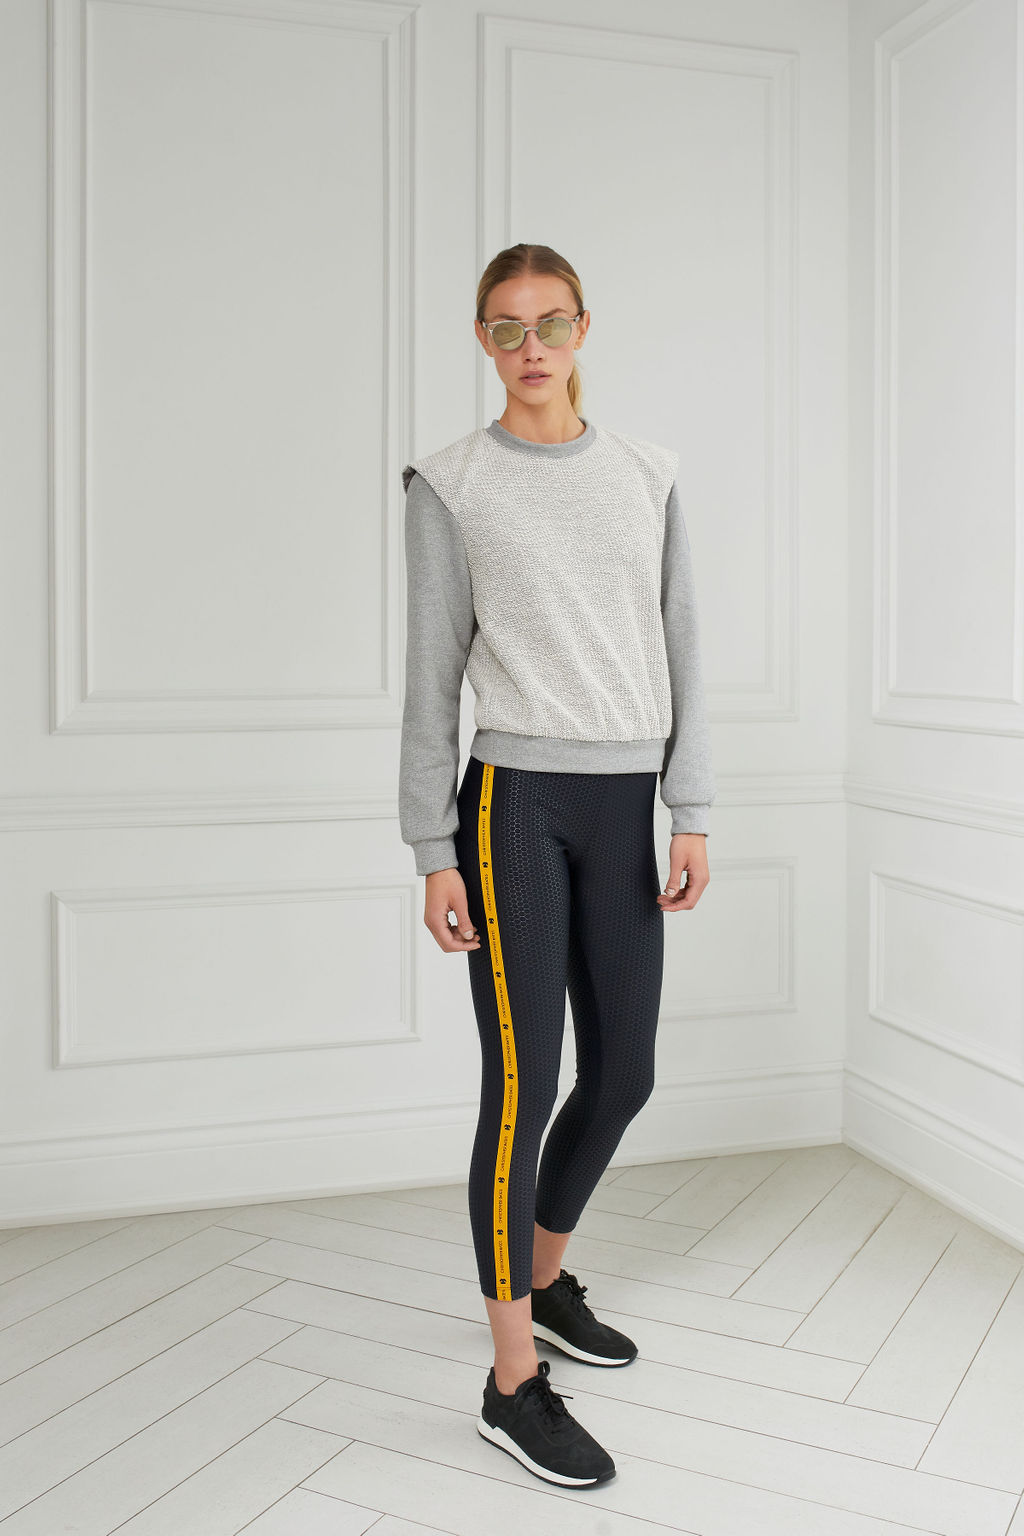 Womens spring 21 collection image